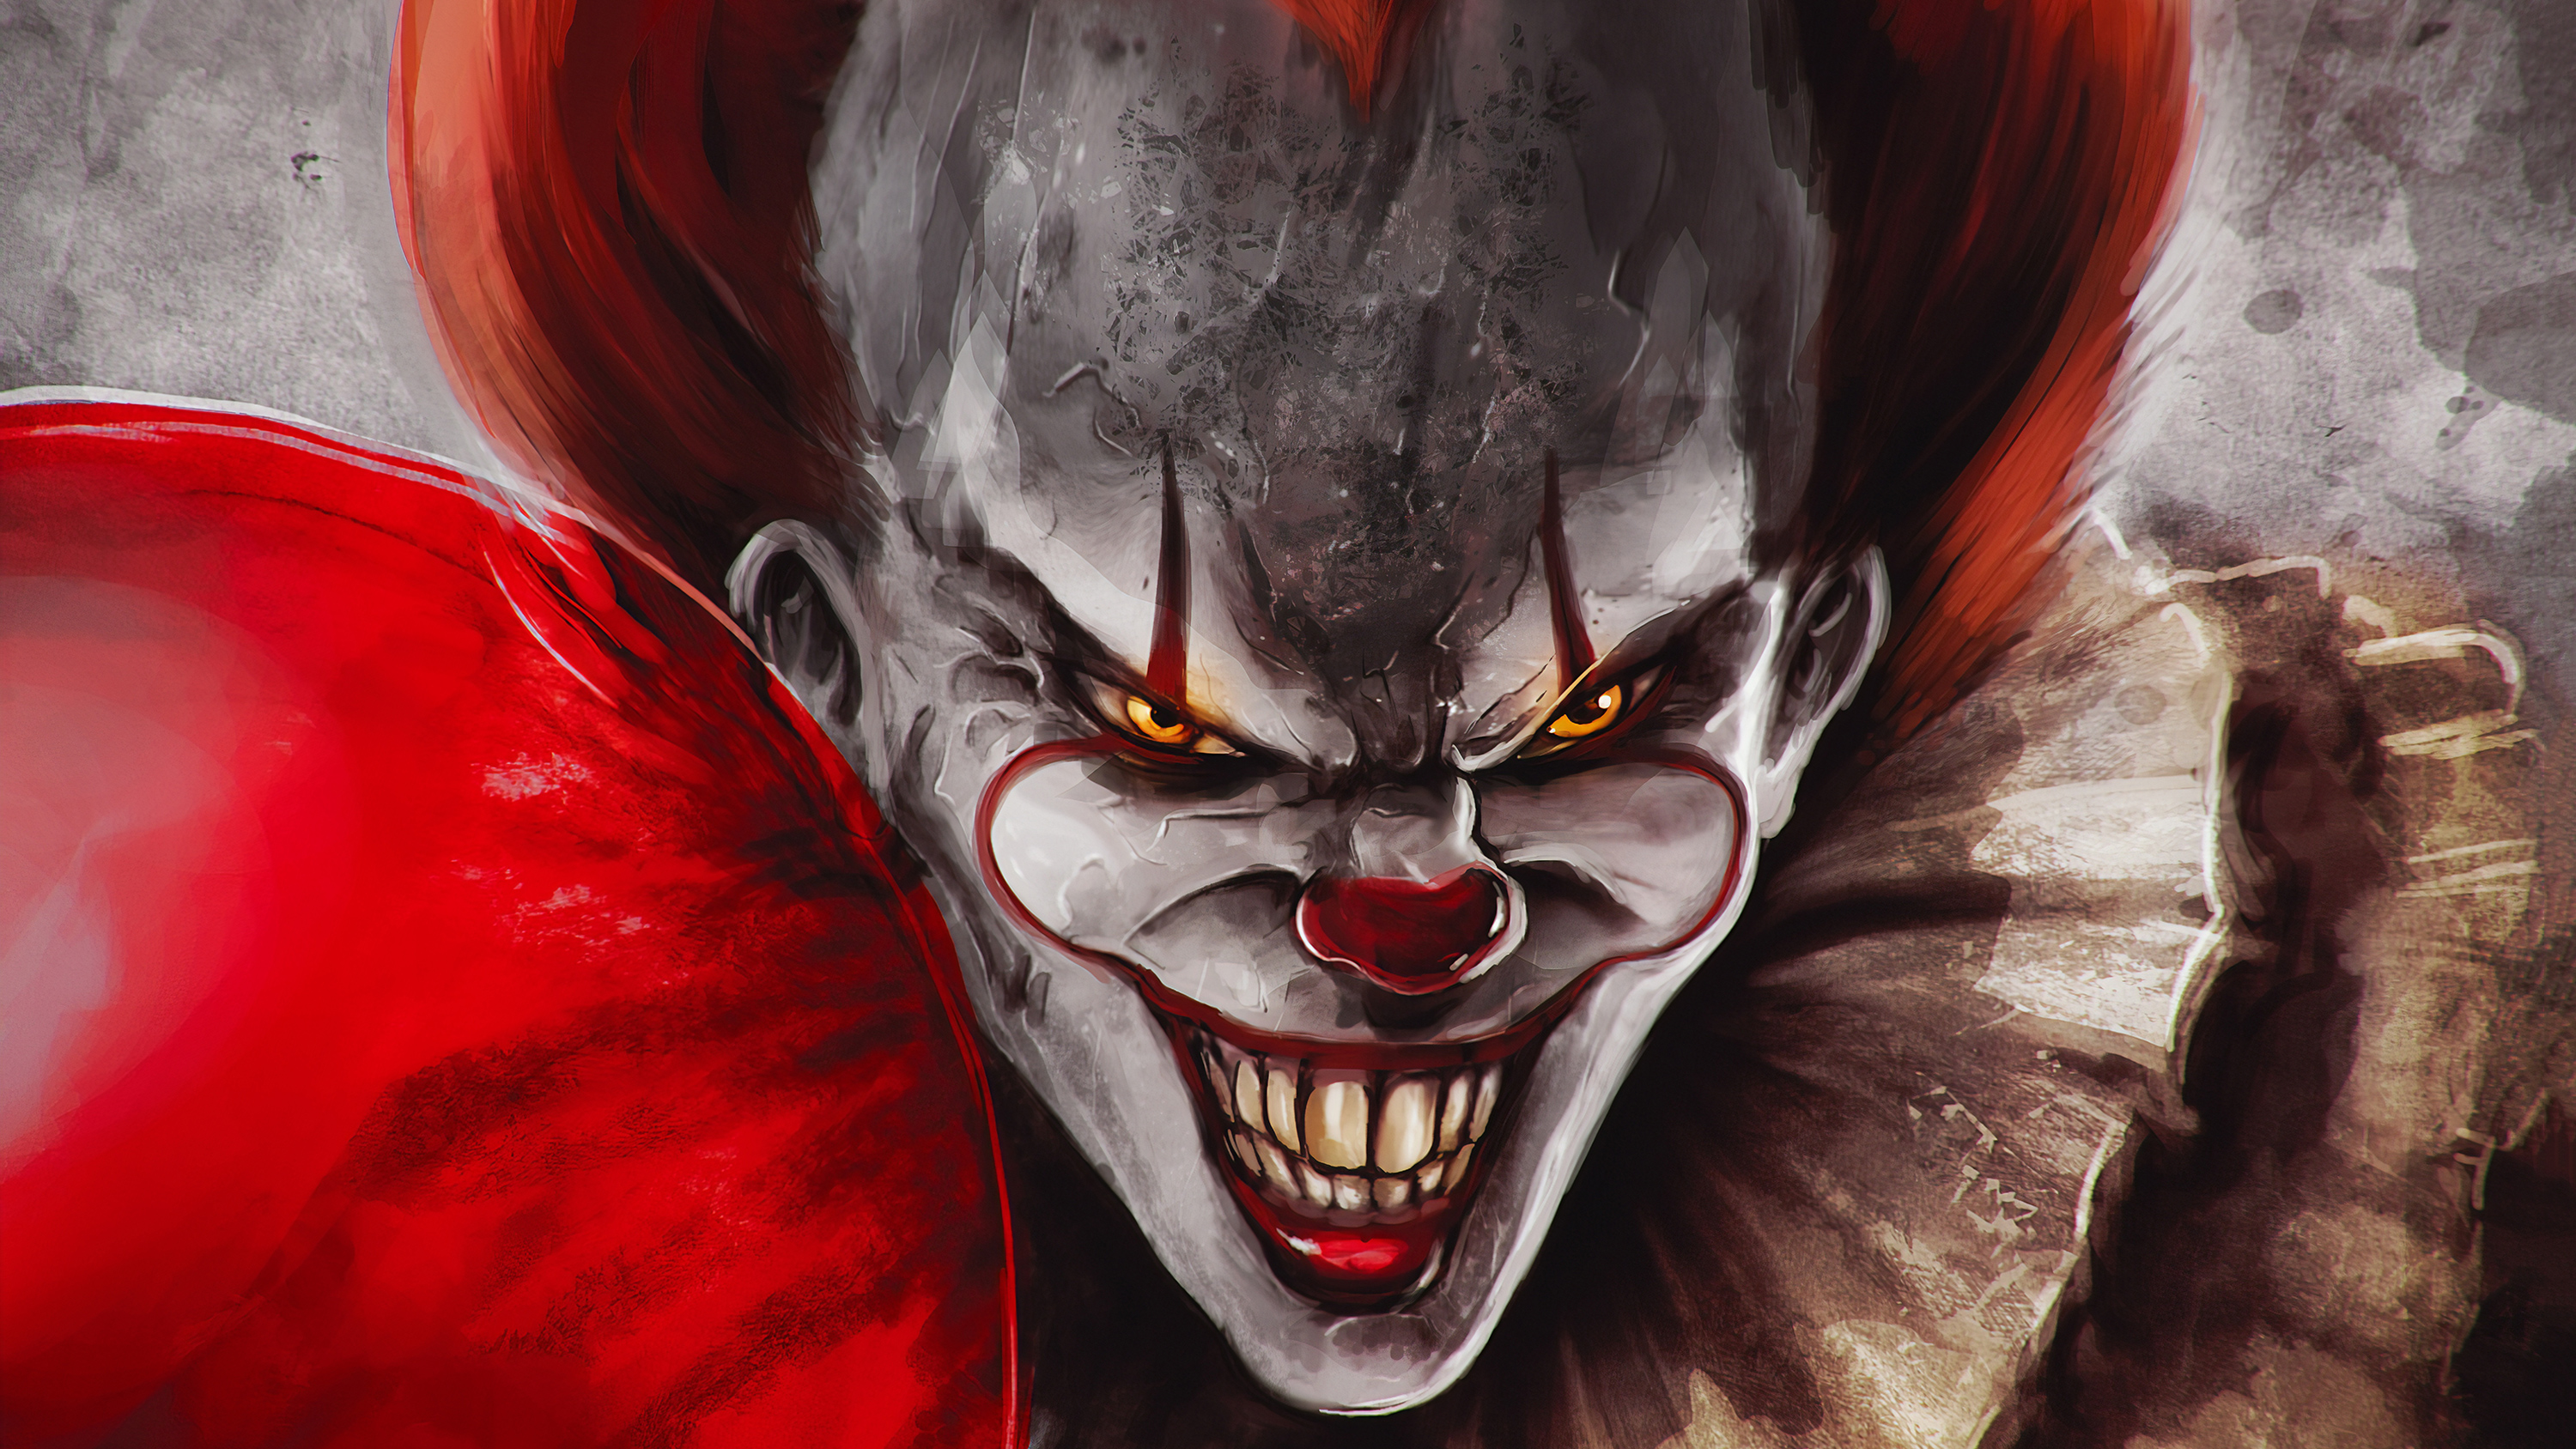 Pennywise Joker Hd Movies 4k Wallpapers Images Backgrounds